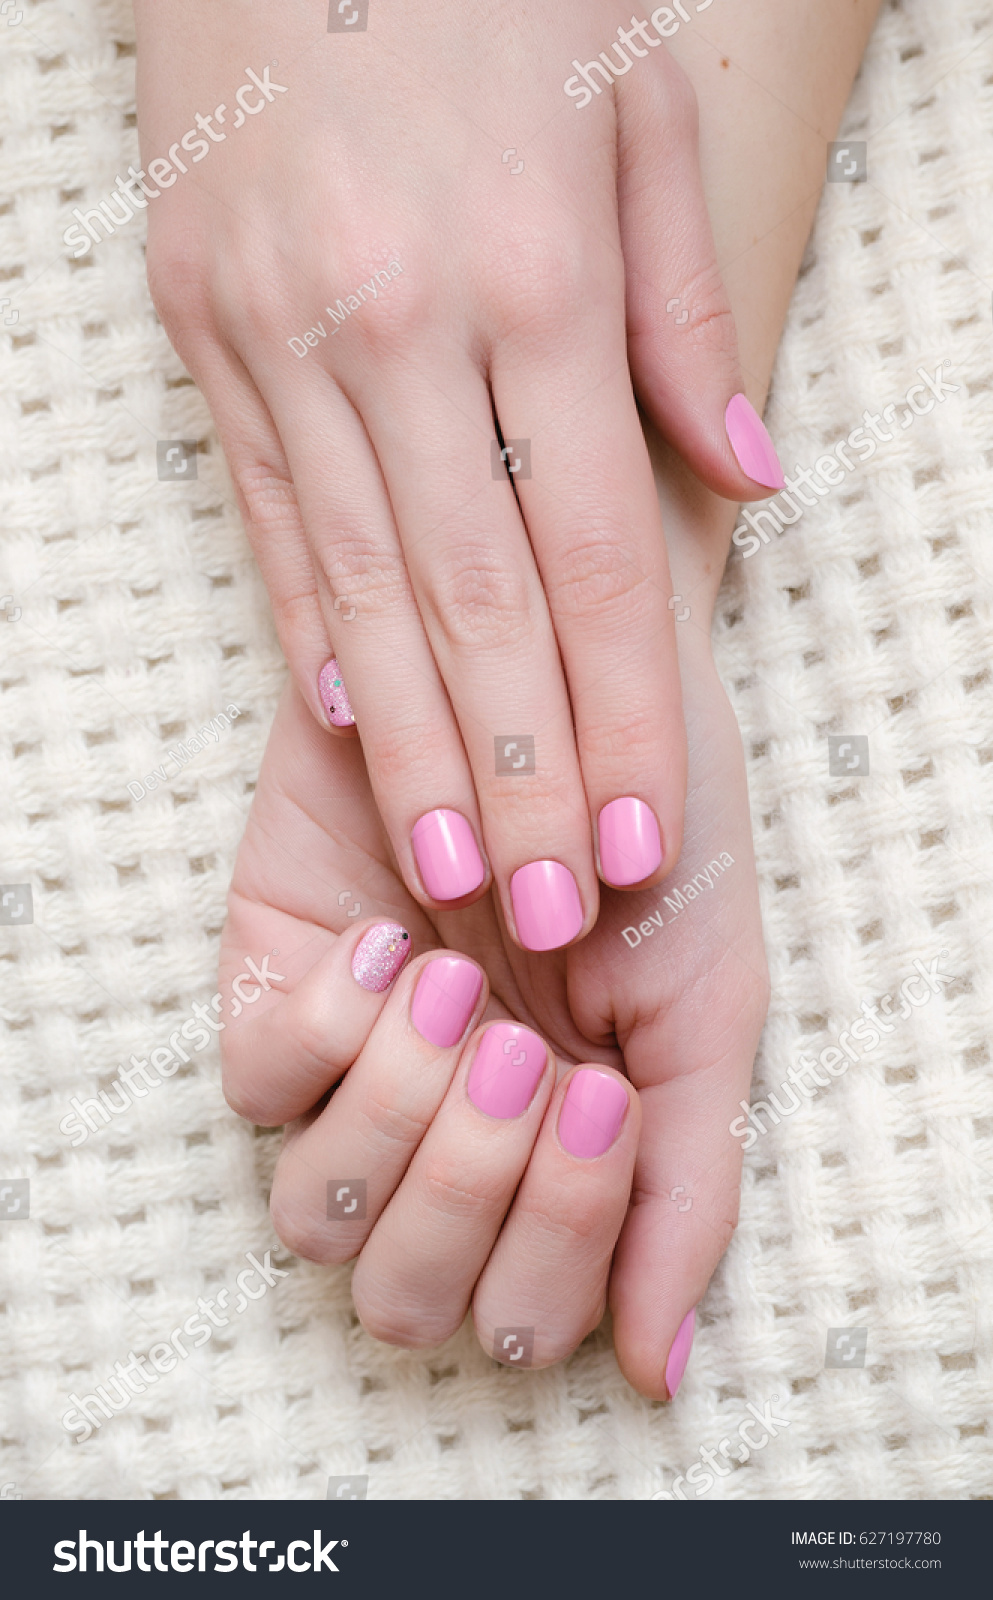 Nail art beautiful female hand warm stock photo 627197780 nail art beautiful female hand with warm pink manicure prinsesfo Gallery